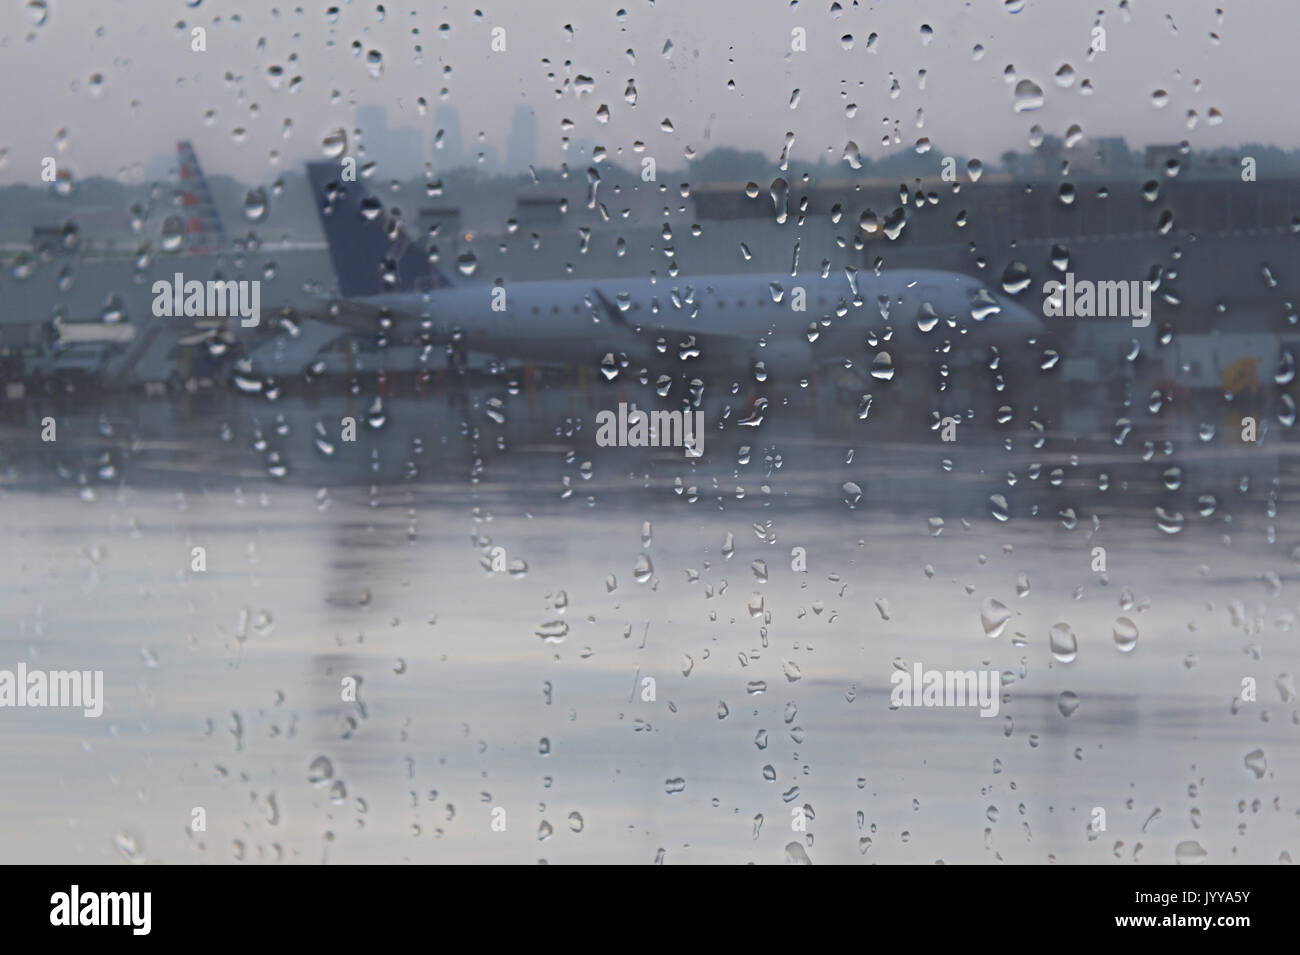 Airplane At Airport Delayed Due To Rain Storm - Stock Image